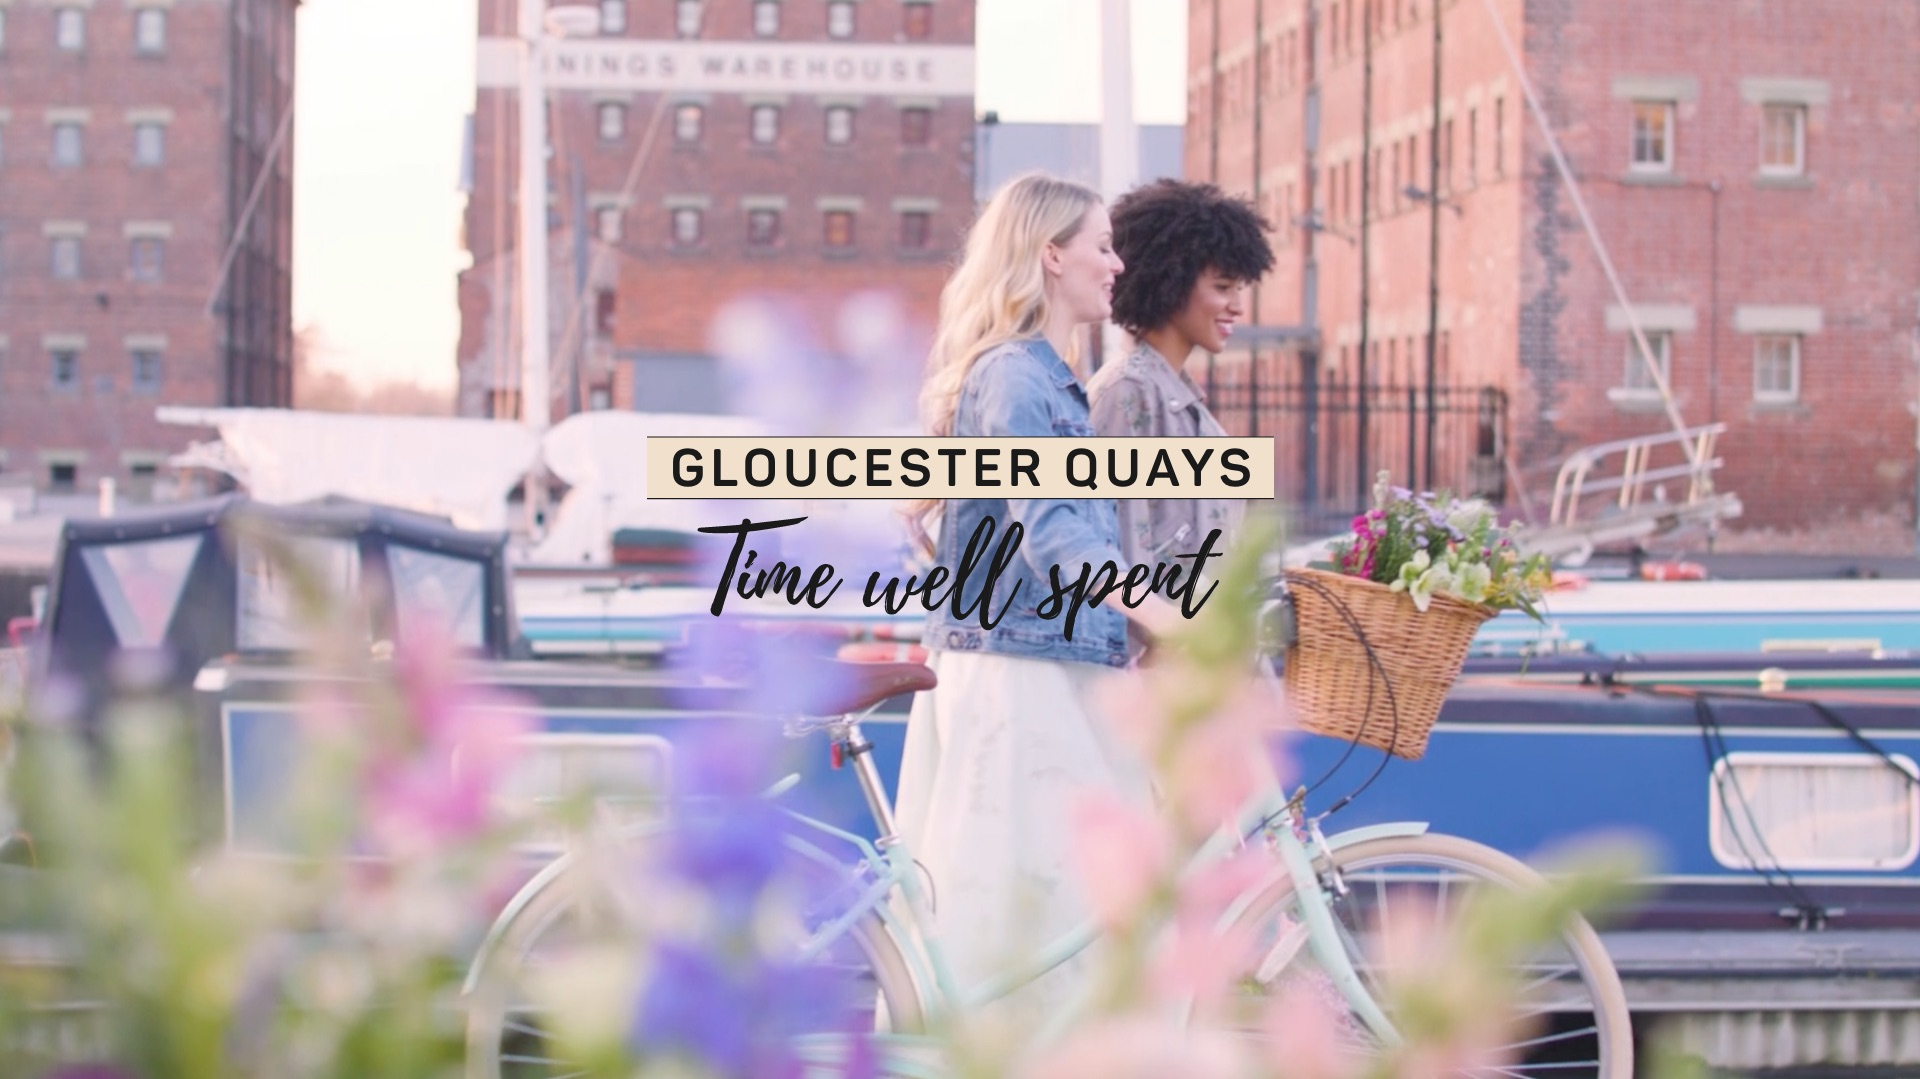 Gloucester-quays-header-fkclondon